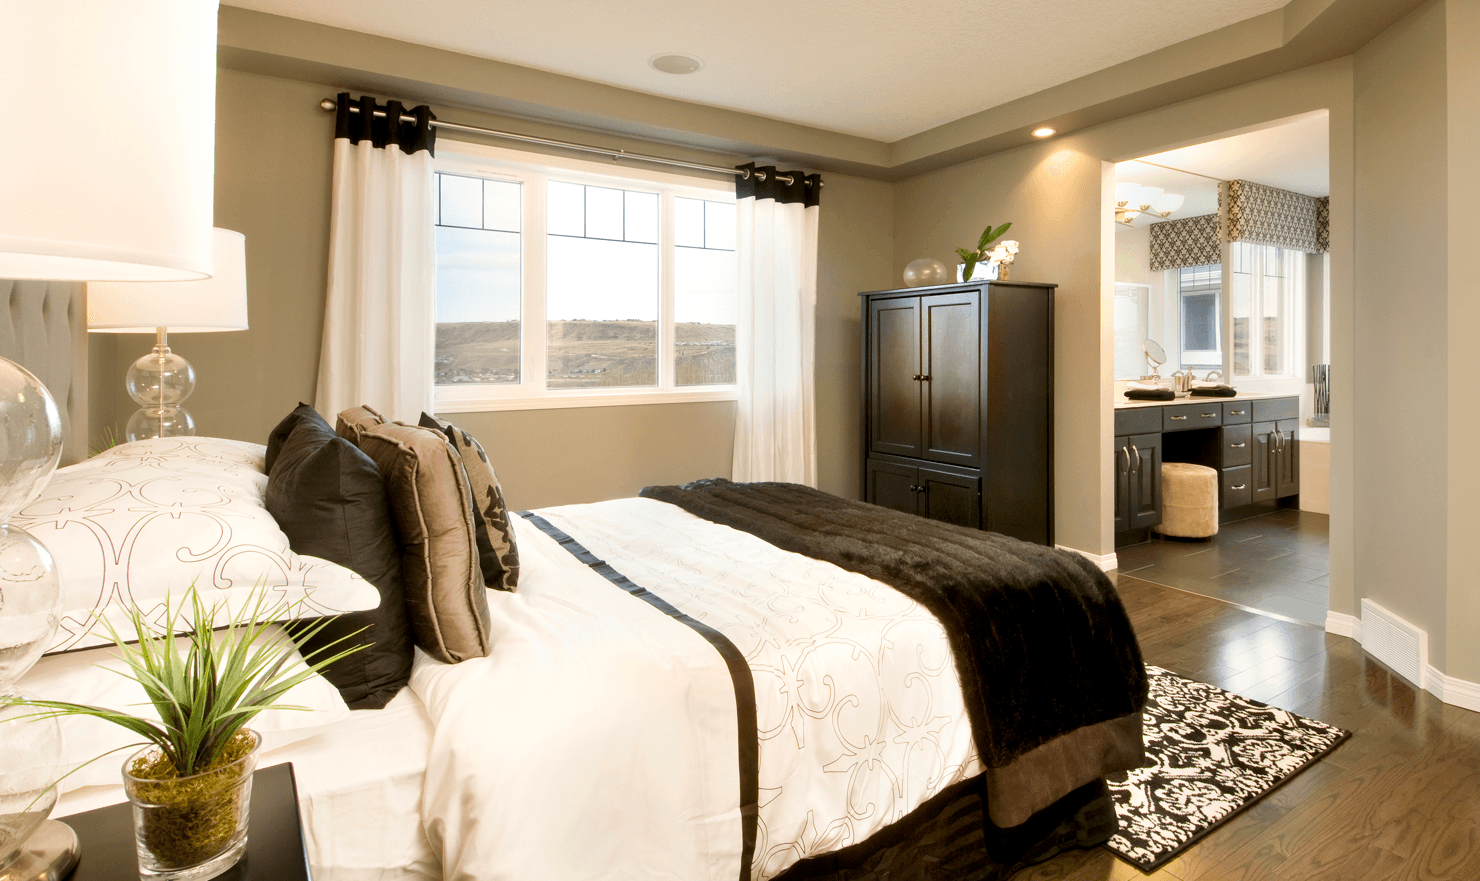 Classic Home Design Ideas That Never Go Out of Style: Master Bedroom Manchester Master image